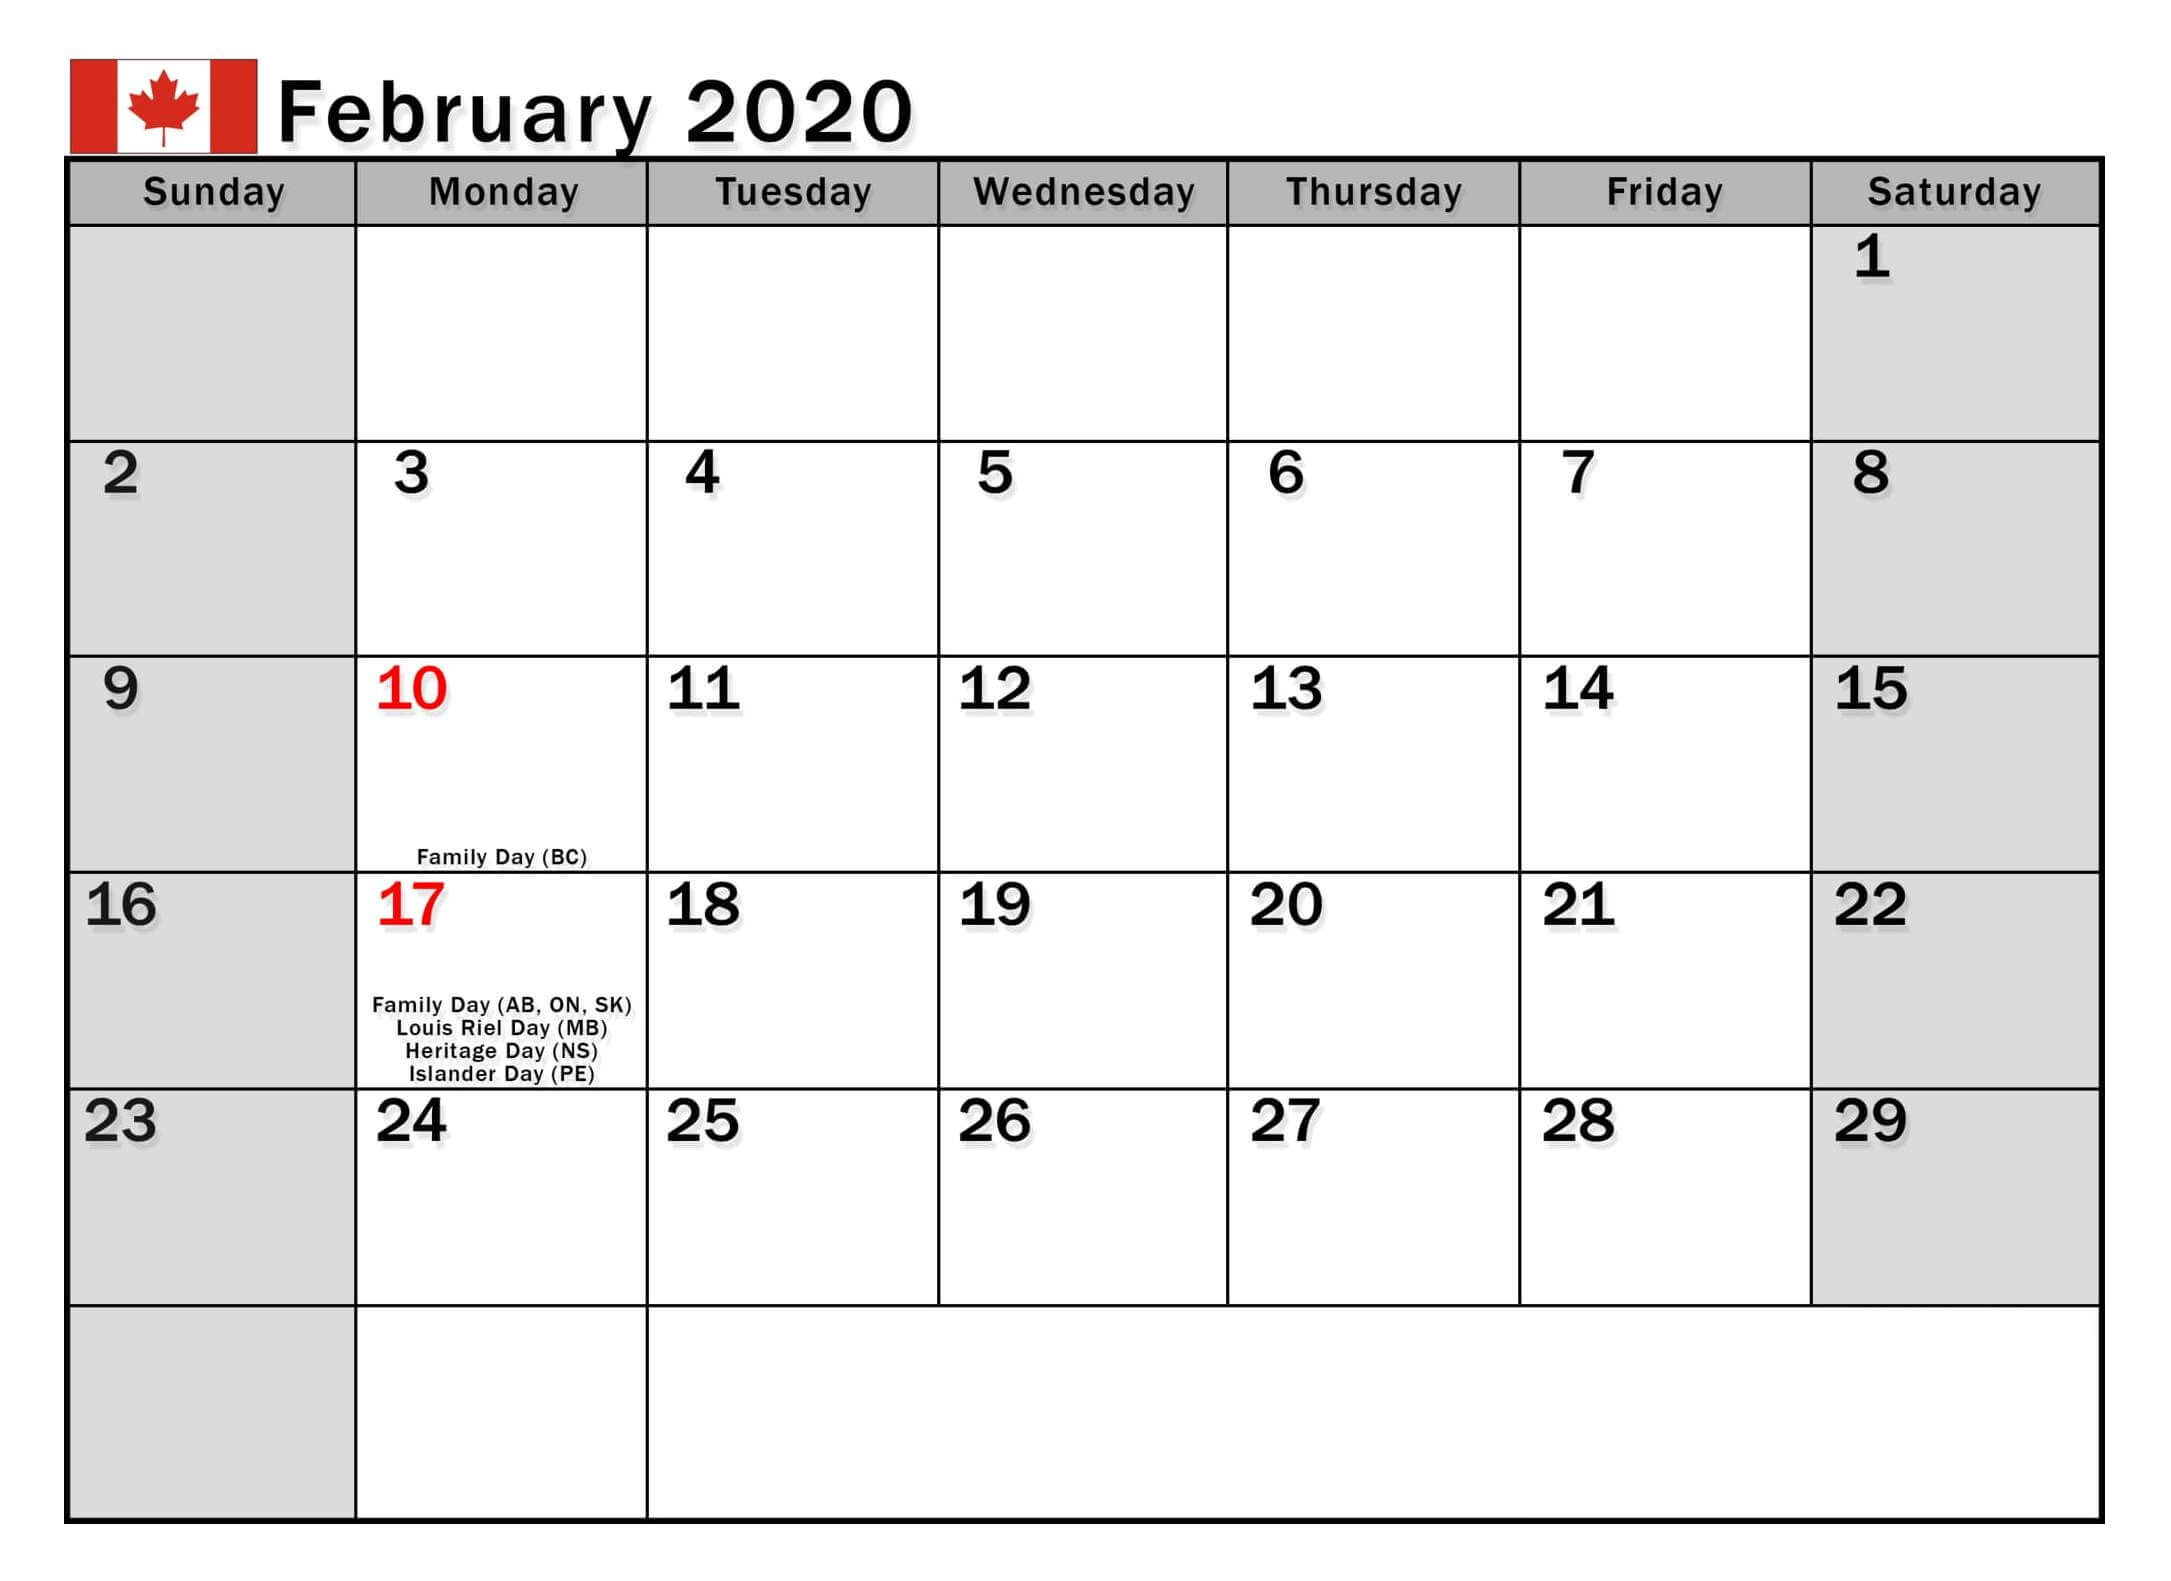 February 2020 Calendar Canada Bank Holidays - 2019 Calendars